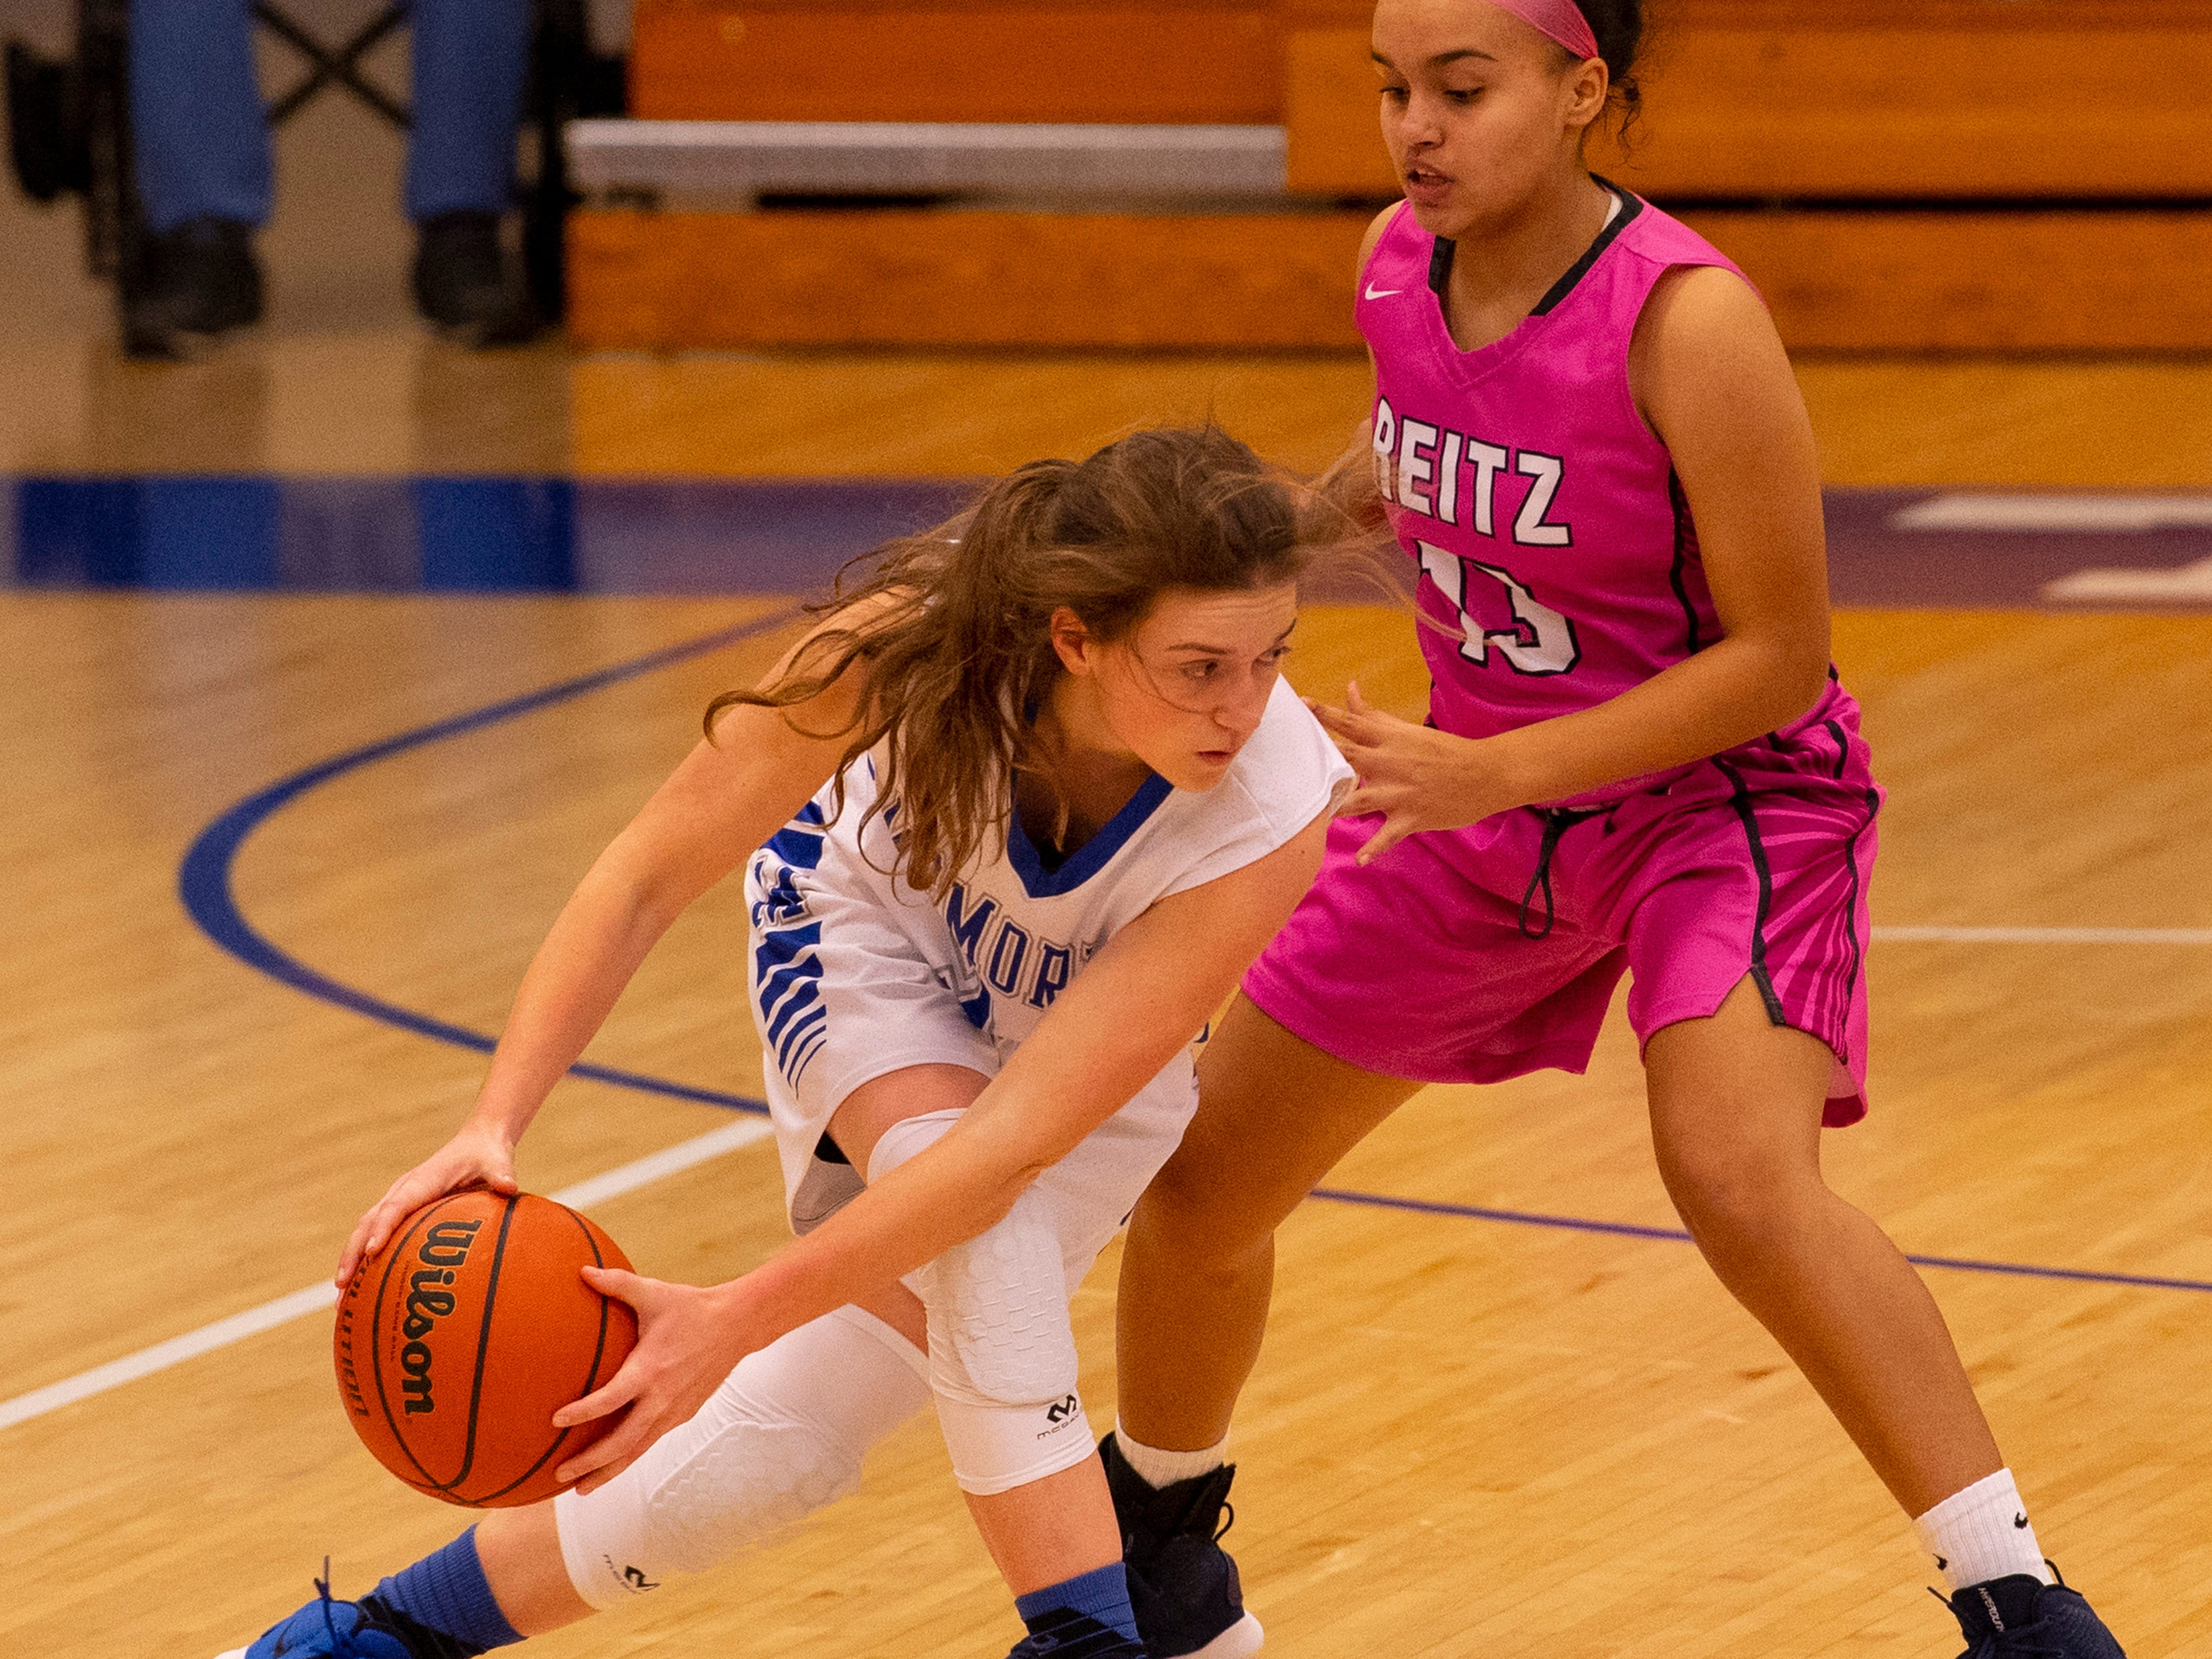 Memorial's  Soffia Rieckers (31) is guarded by Reitz's Kyla Terry (13) in the first round of the SIAC Tournament at Memorial High School Tuesday night.